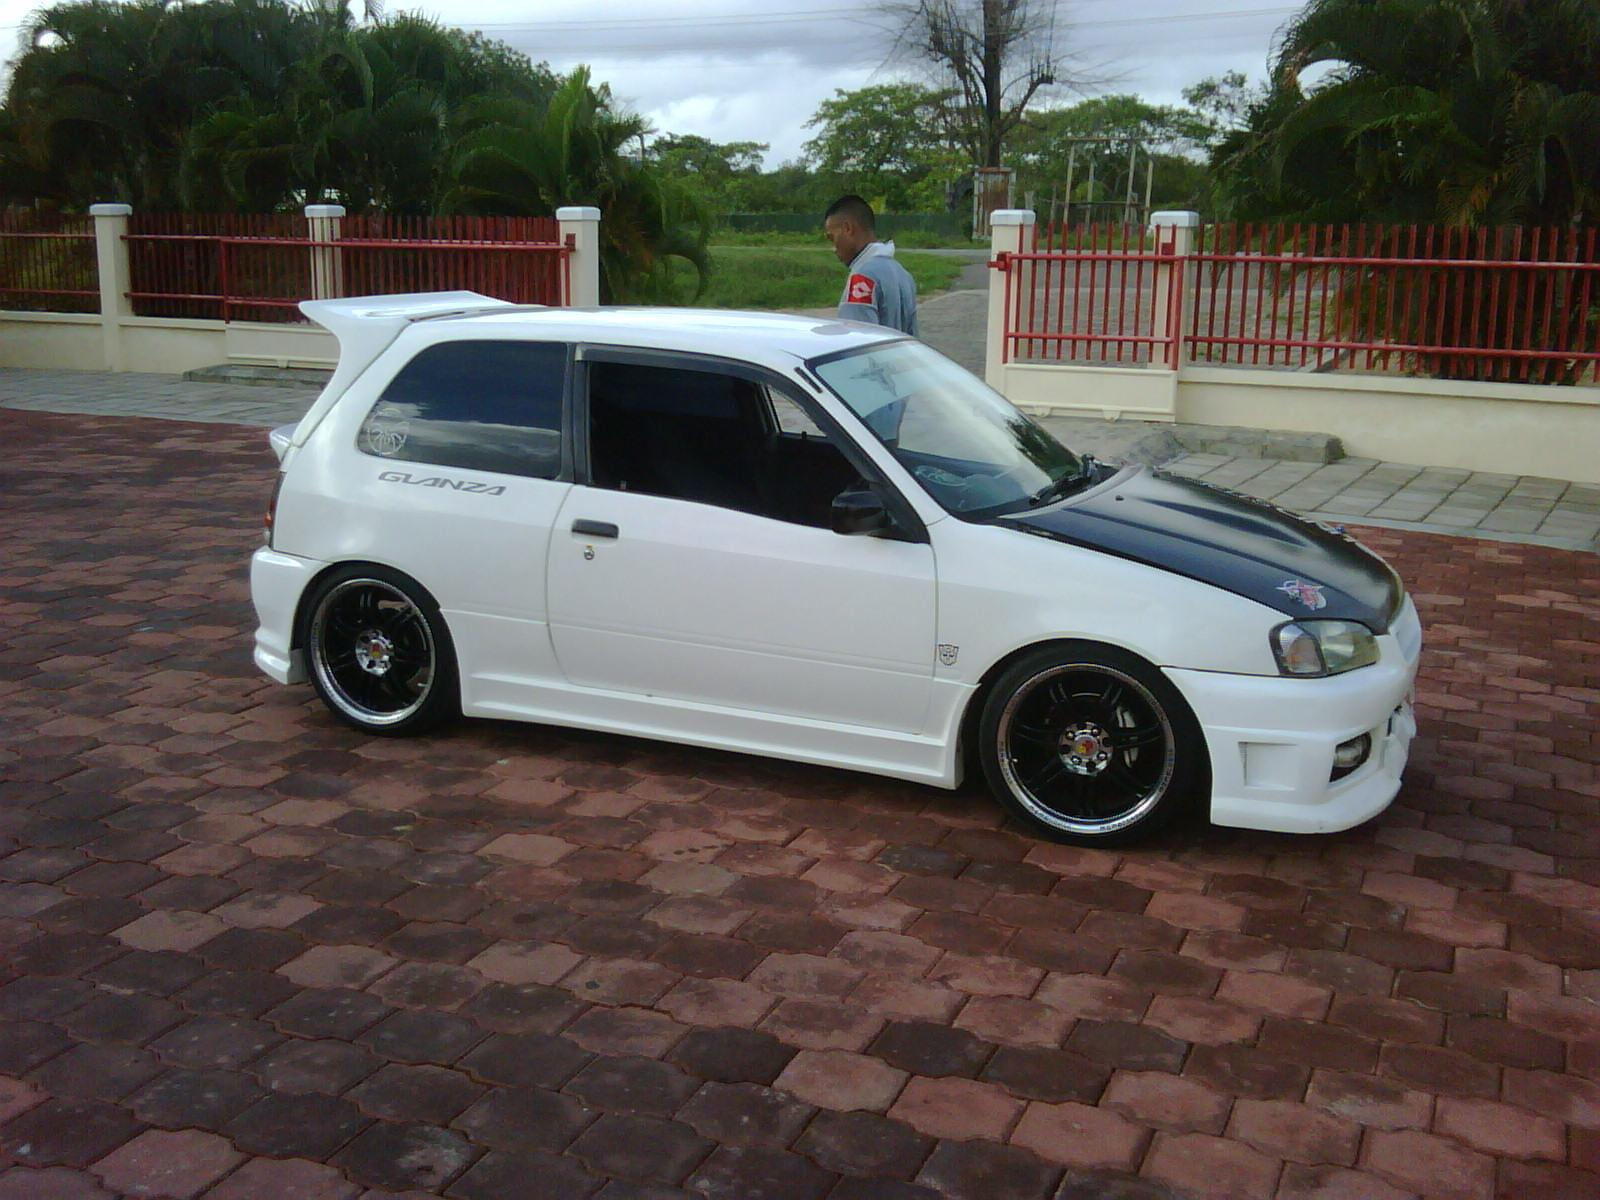 Glanza_dream 1996 Toyota Starlet